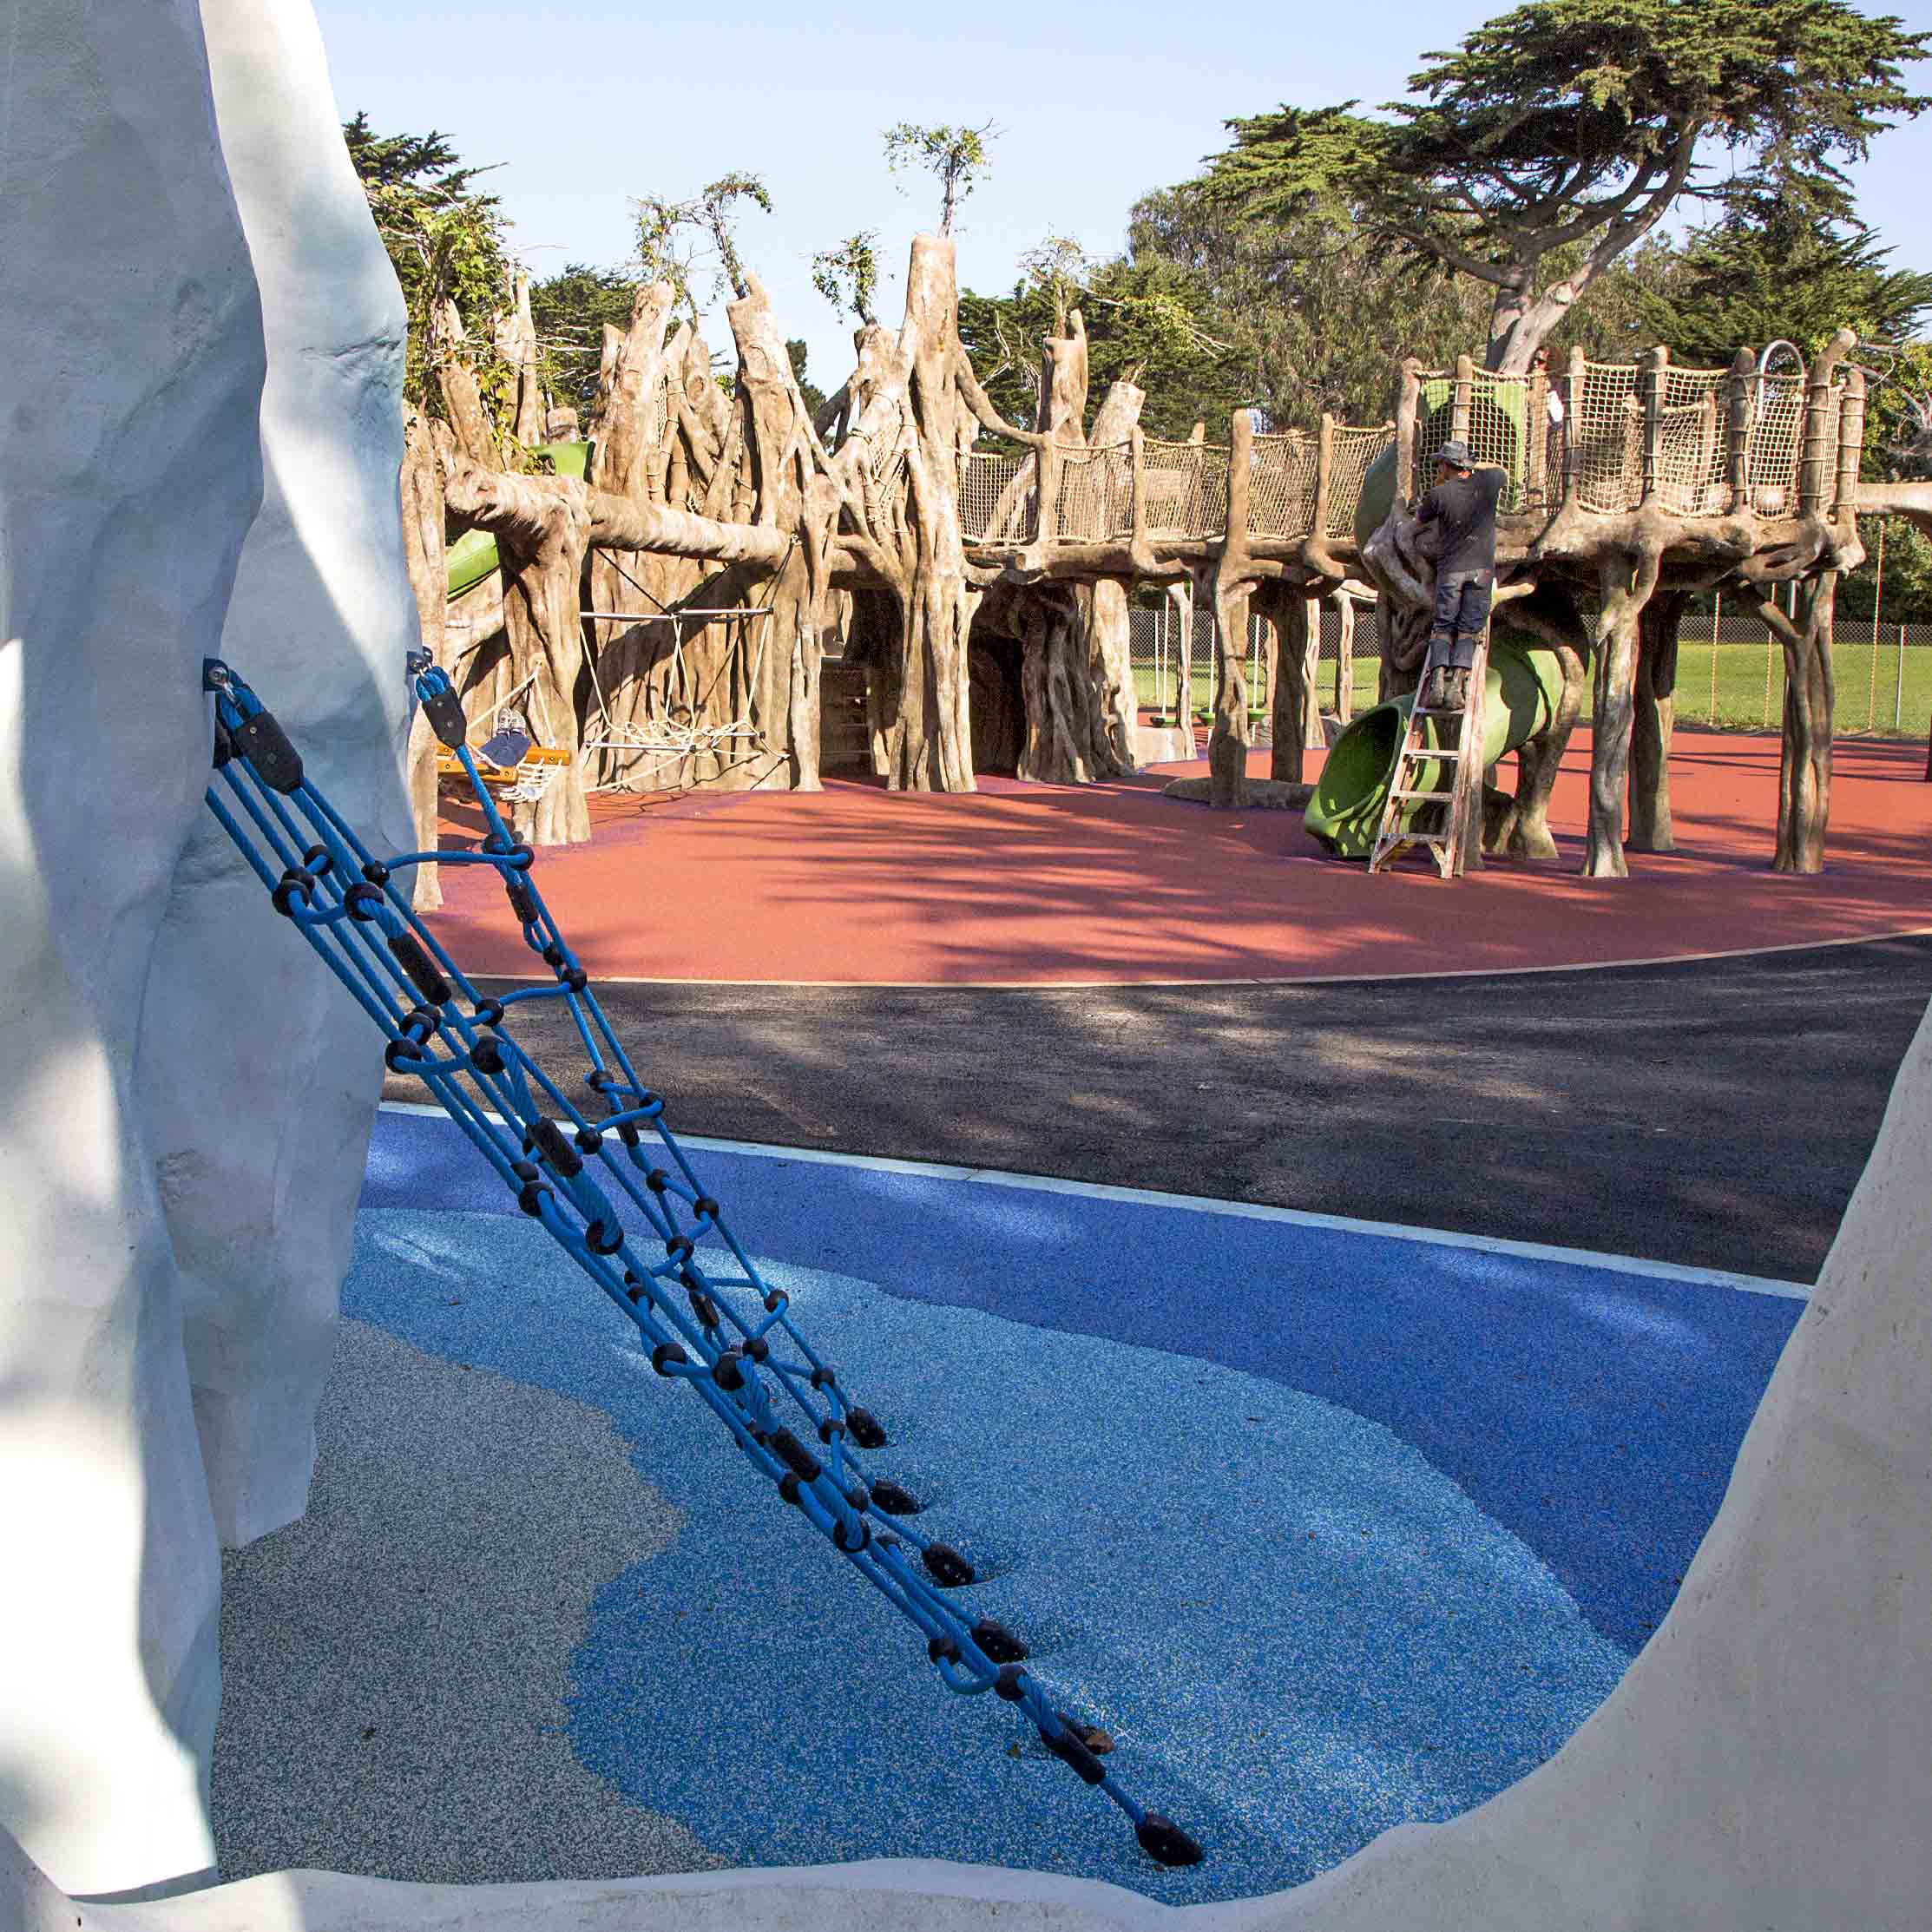 San Francisco Zoo & Gardens : Elinor Friend Playground  San Francisco, CA